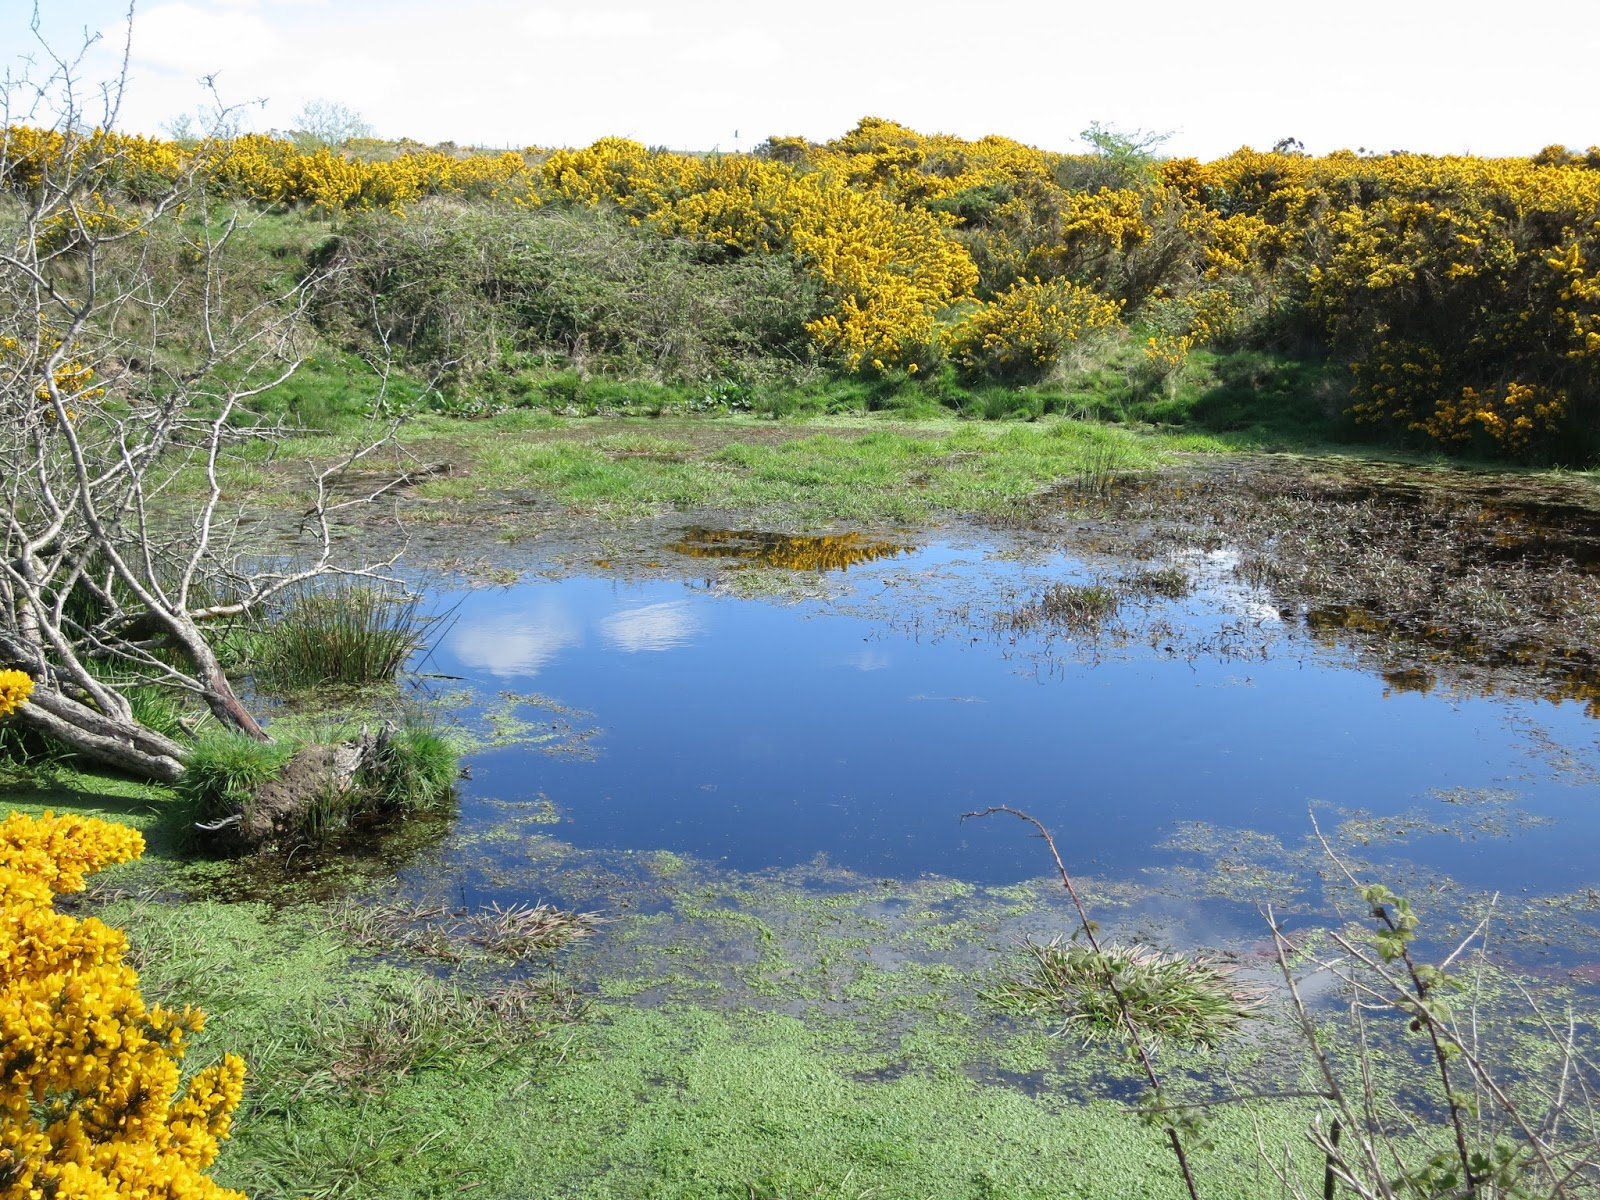 Pond with weed. Gorse around it and sky reflected in it. Uprooted small tree.